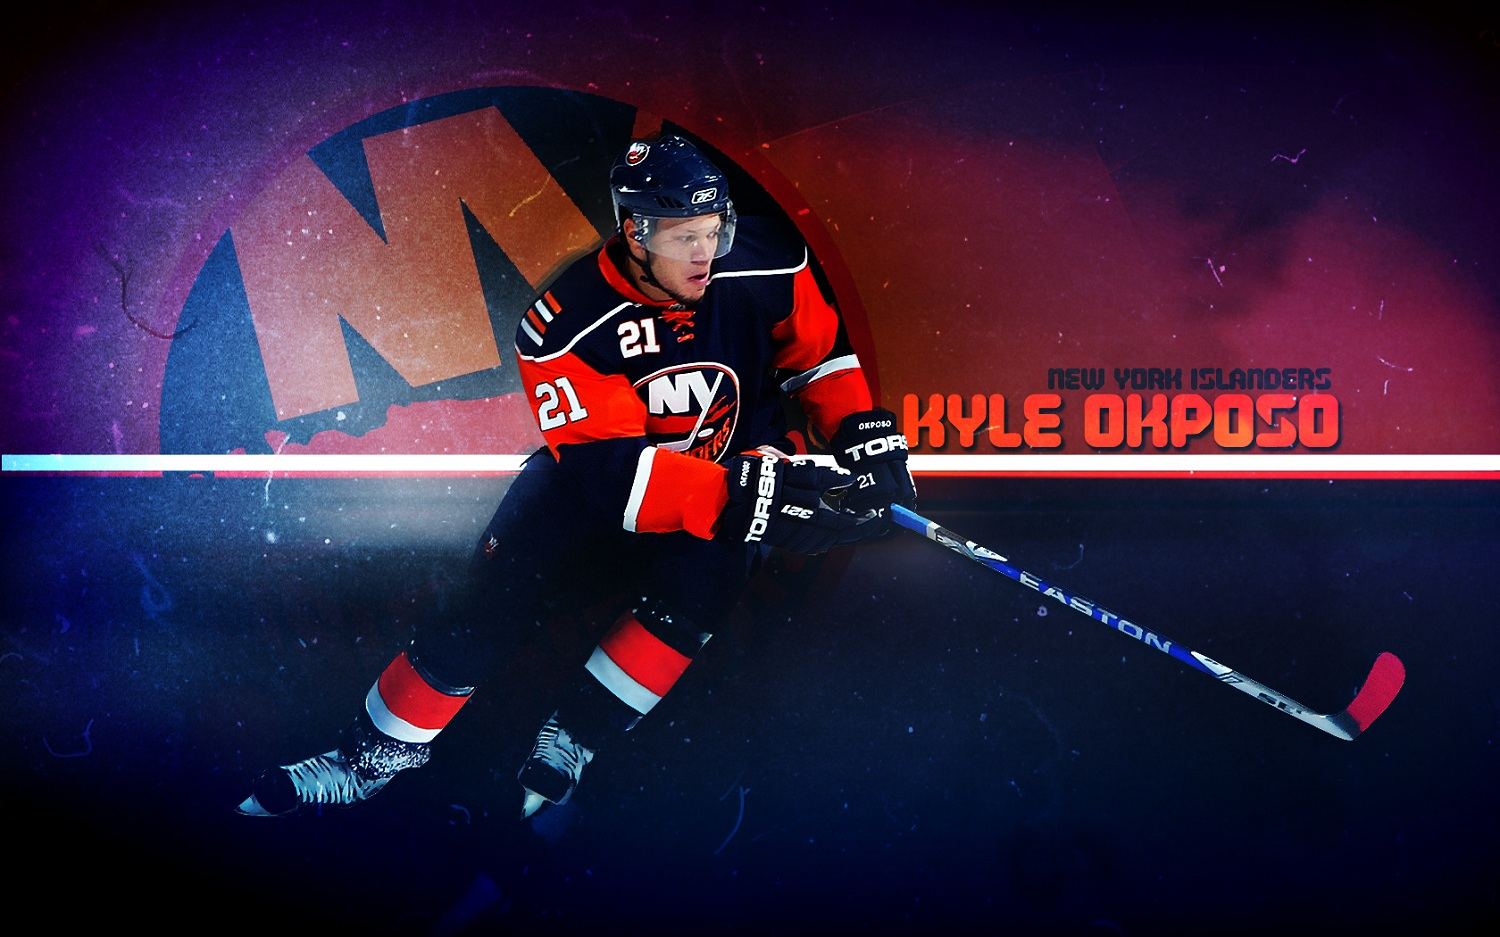 hockey Kyle Okposo New York Islanders wallpaper background 1500x937